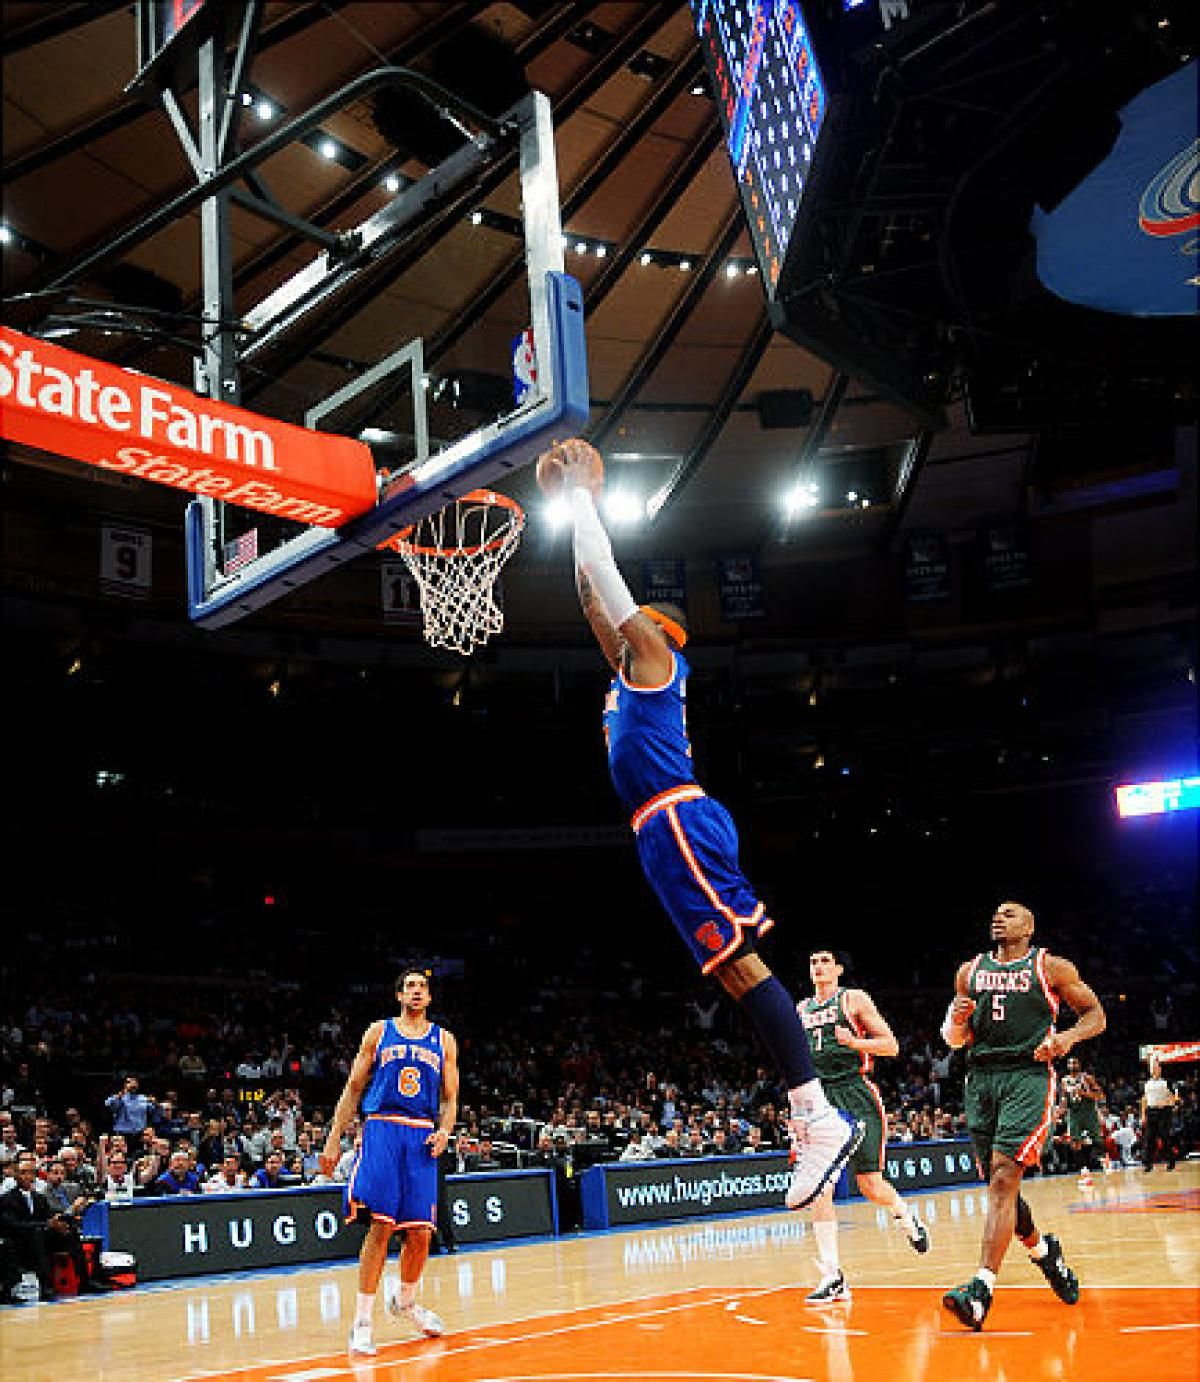 carmelo anthony dunking carmelo anthony dunking on